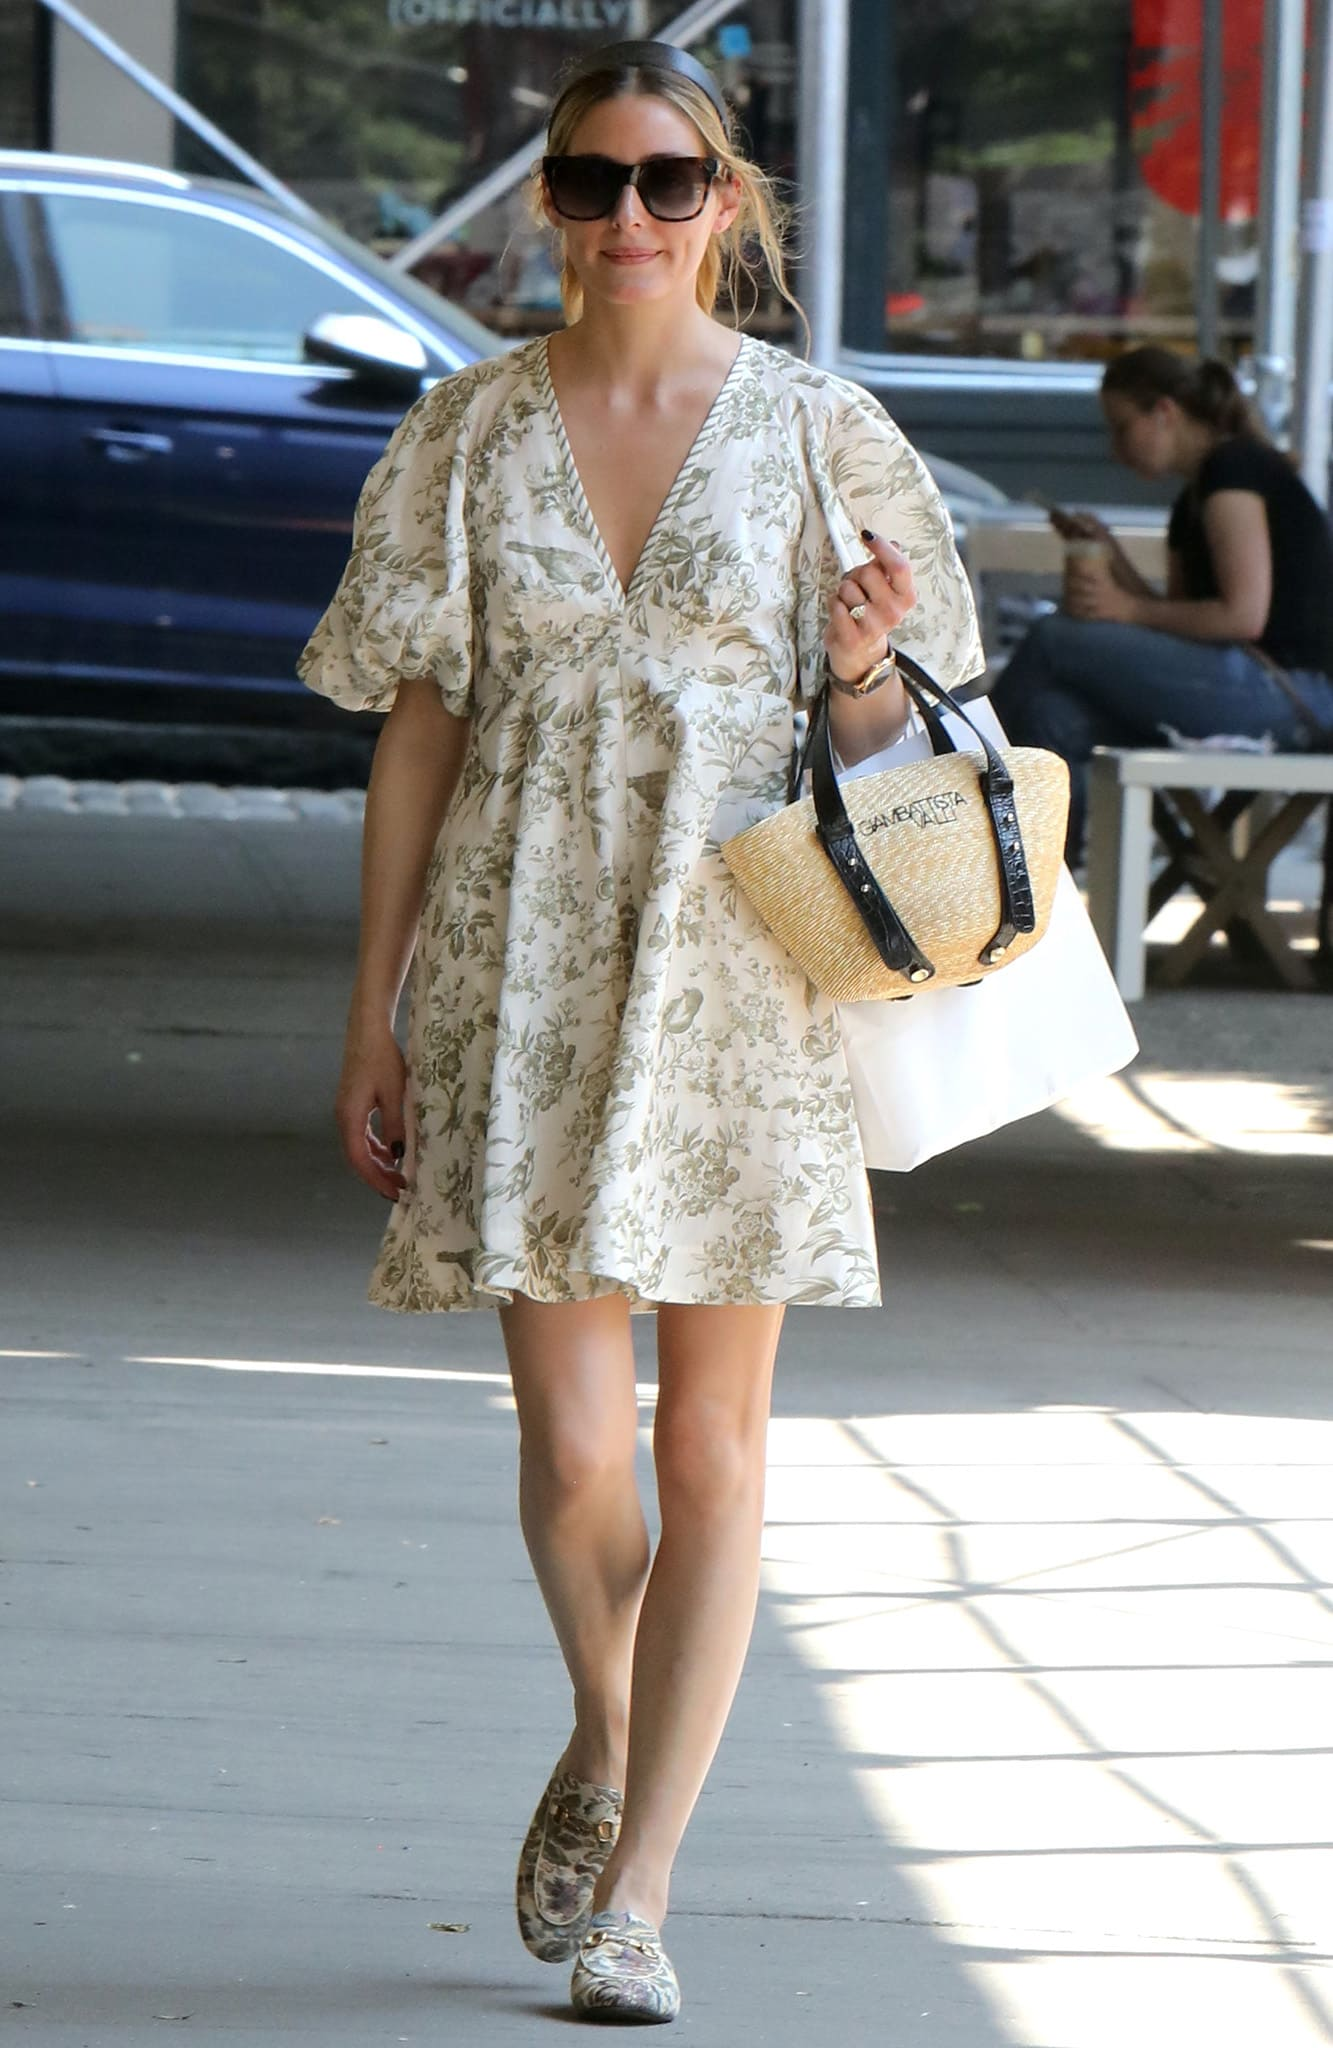 Olivia Palermo shows off her legs in Zimmermann flora-inspired mini dress